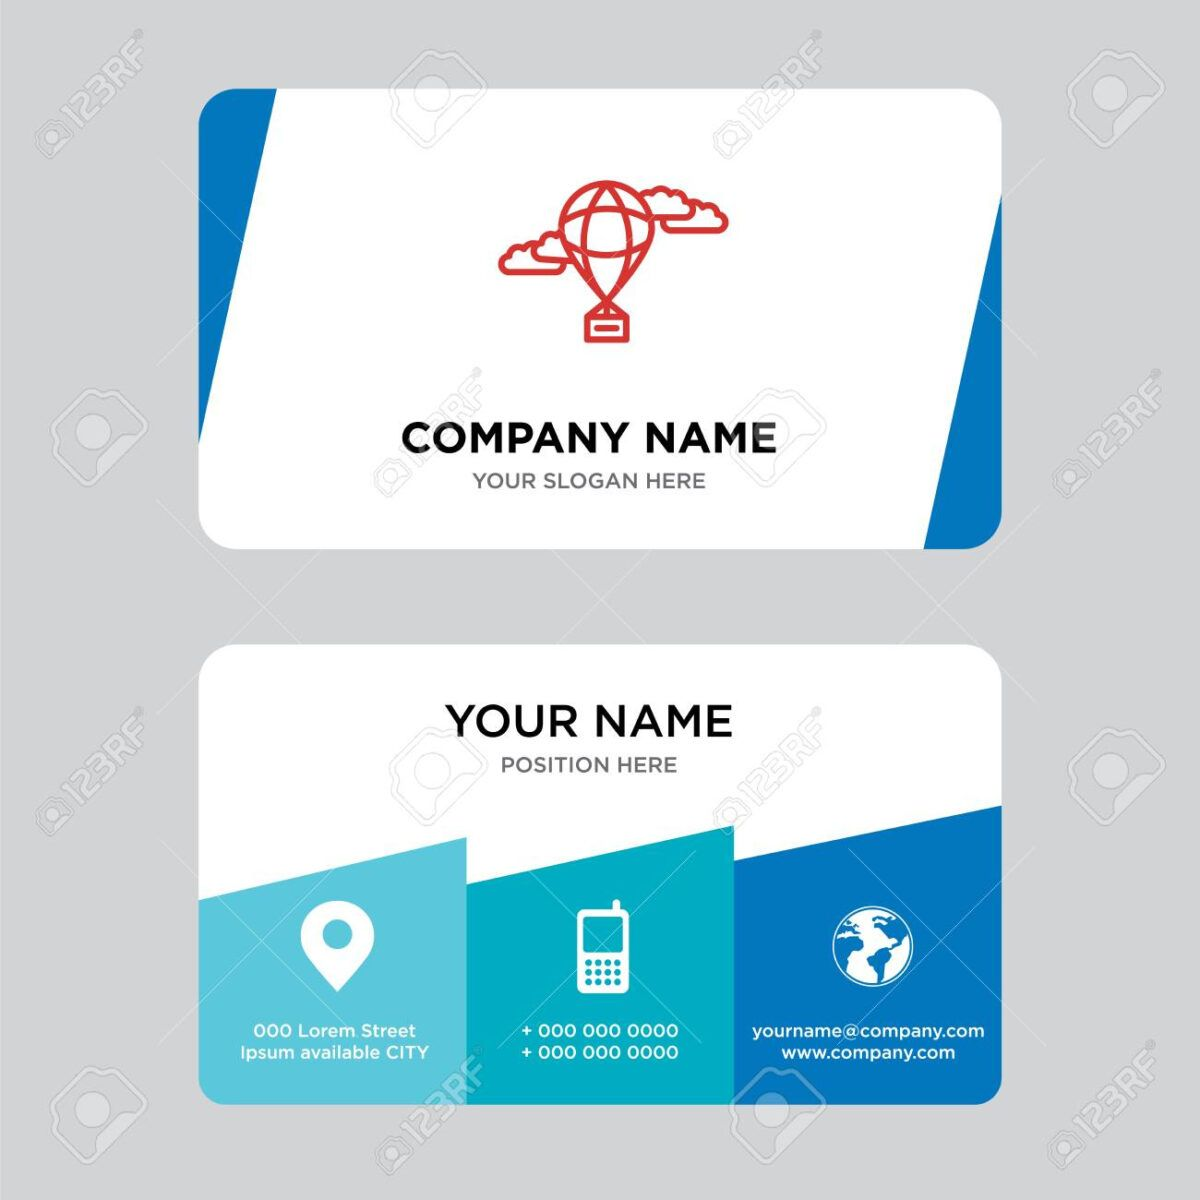 Hot Air Balloon Business Card Design Template Visiting For Your Company Moder Business Card Template Design Business Card Design Business Card Template Word